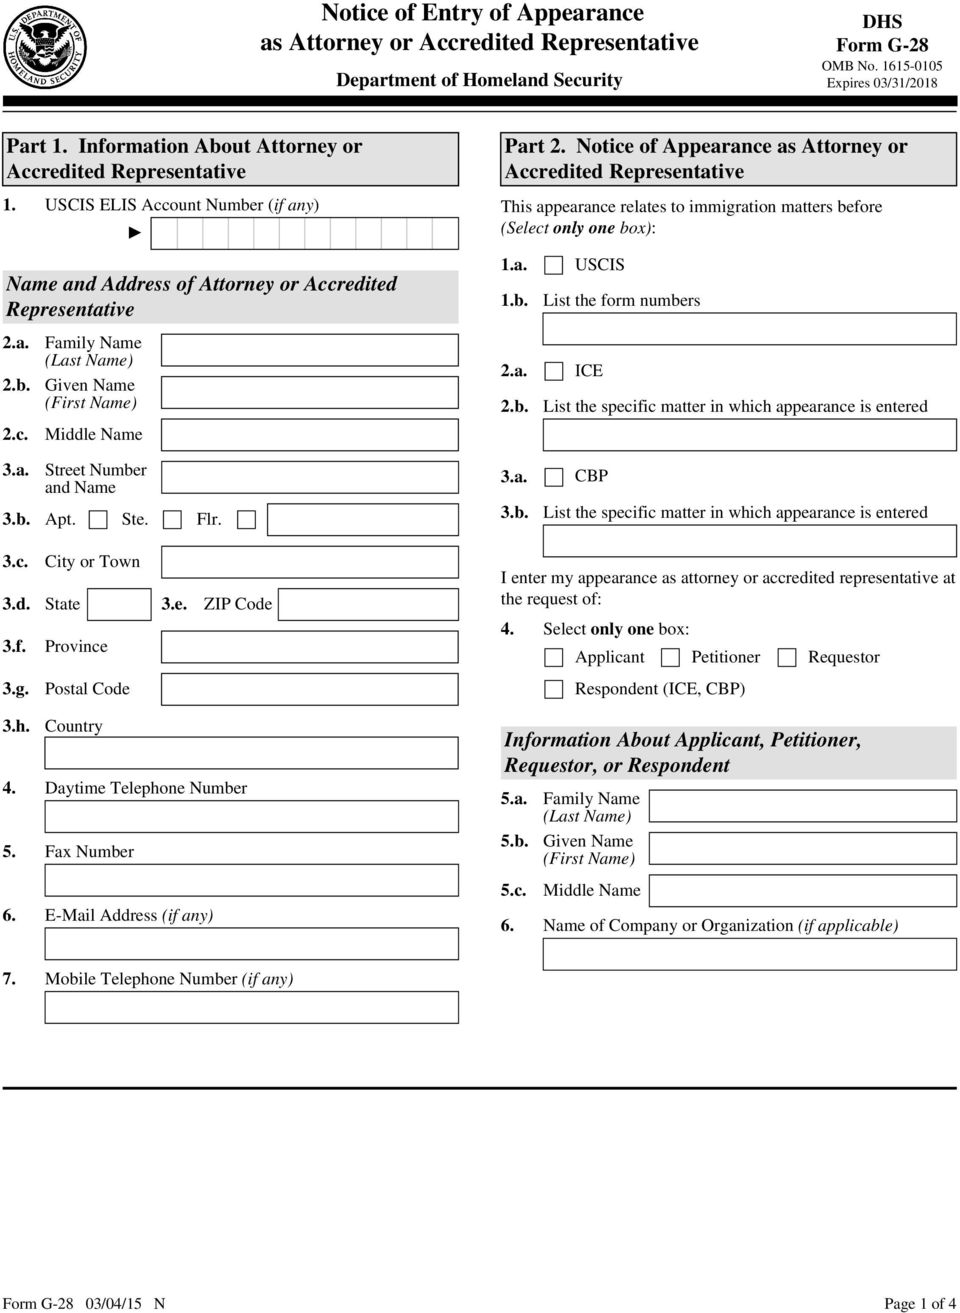 Notice of Appearance as Attorney or This appearance relates to immigration matters before (Select only one box): 1.a. 1.b. 2.a. USCIS List the form numbers ICE List the specific matter in which appearance is entered Street Number and Name 3.